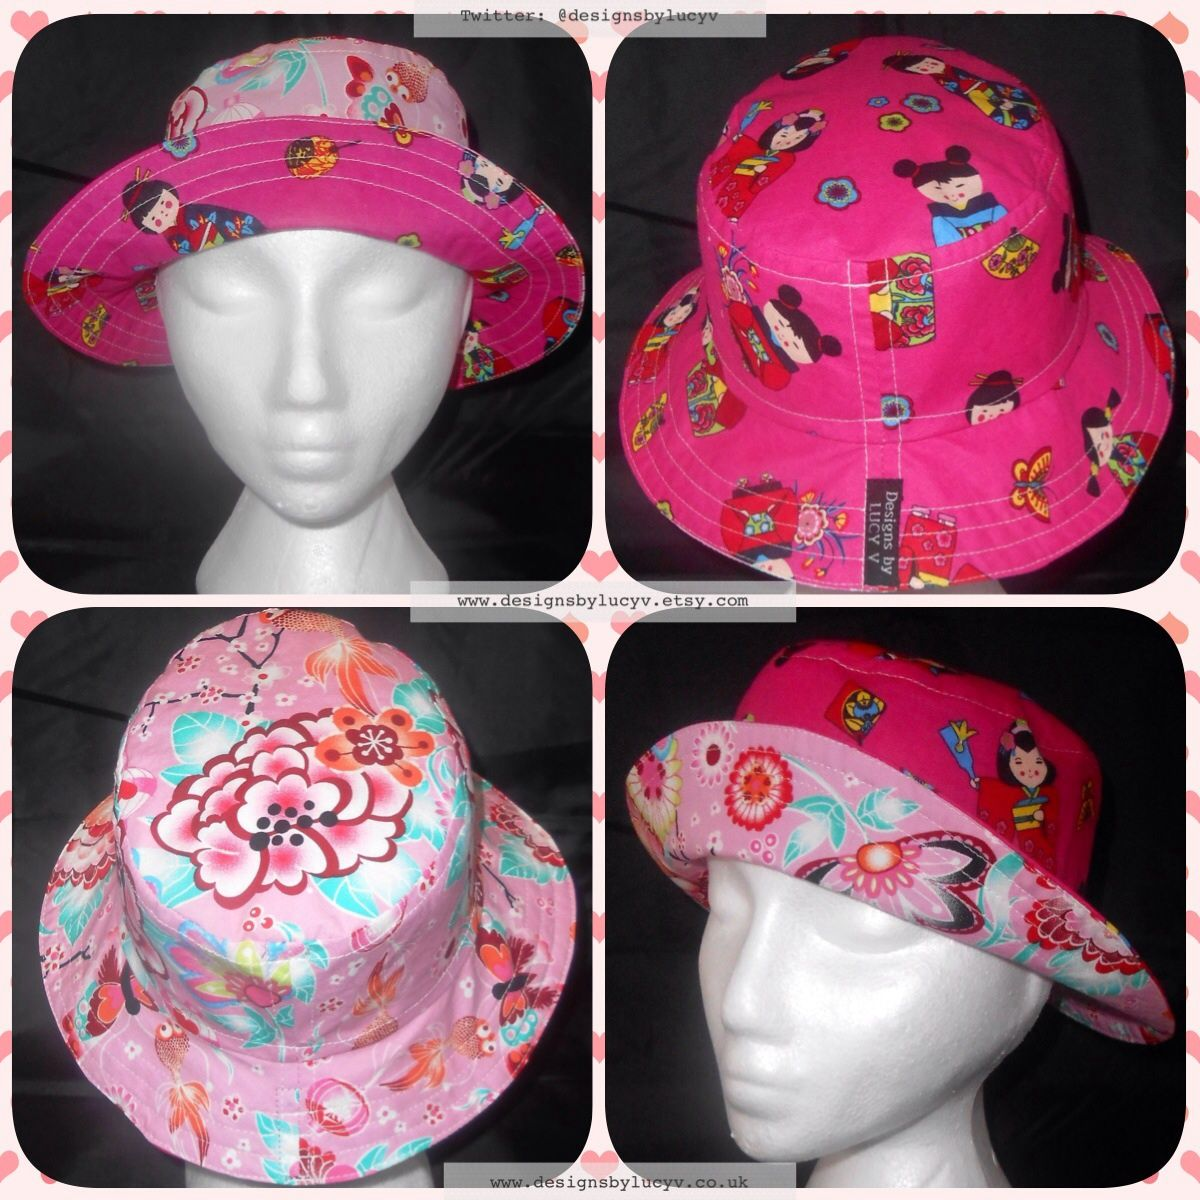 70178c6ec5f Reversible Japanese cherry blossoms and Kokeshi dolls bucket hat   sun hat  from www.designsbylucyv.co.uk